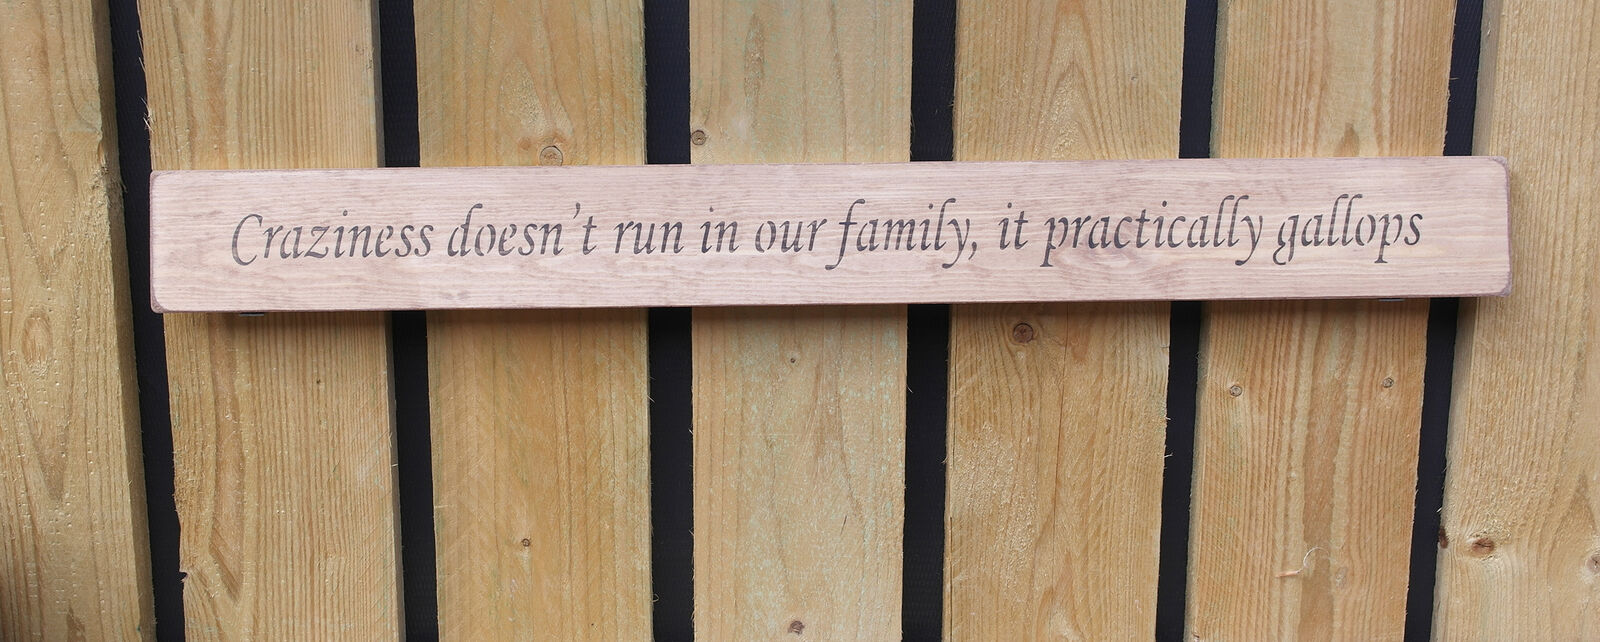 Handmade wooden sign Crazineness doesn't run in our family.....